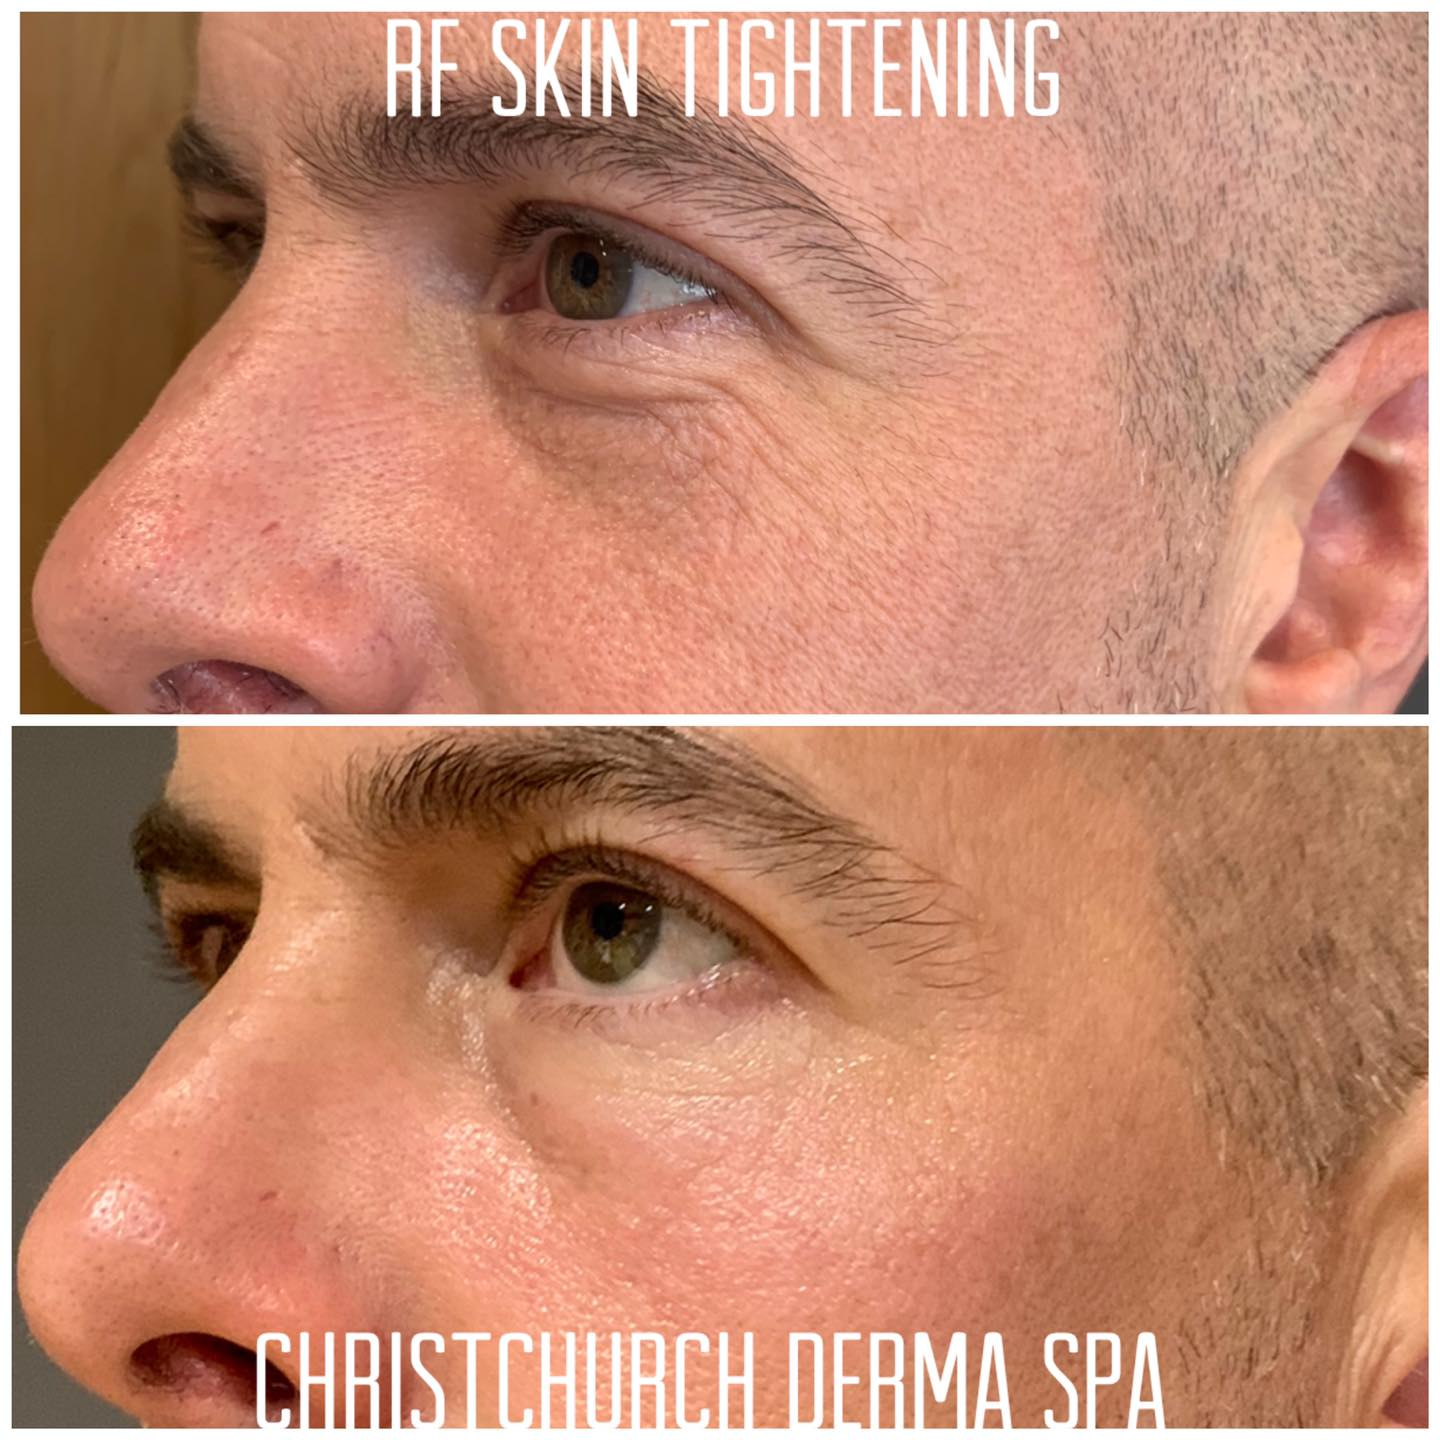 RF skin tightening eyes before and after photos